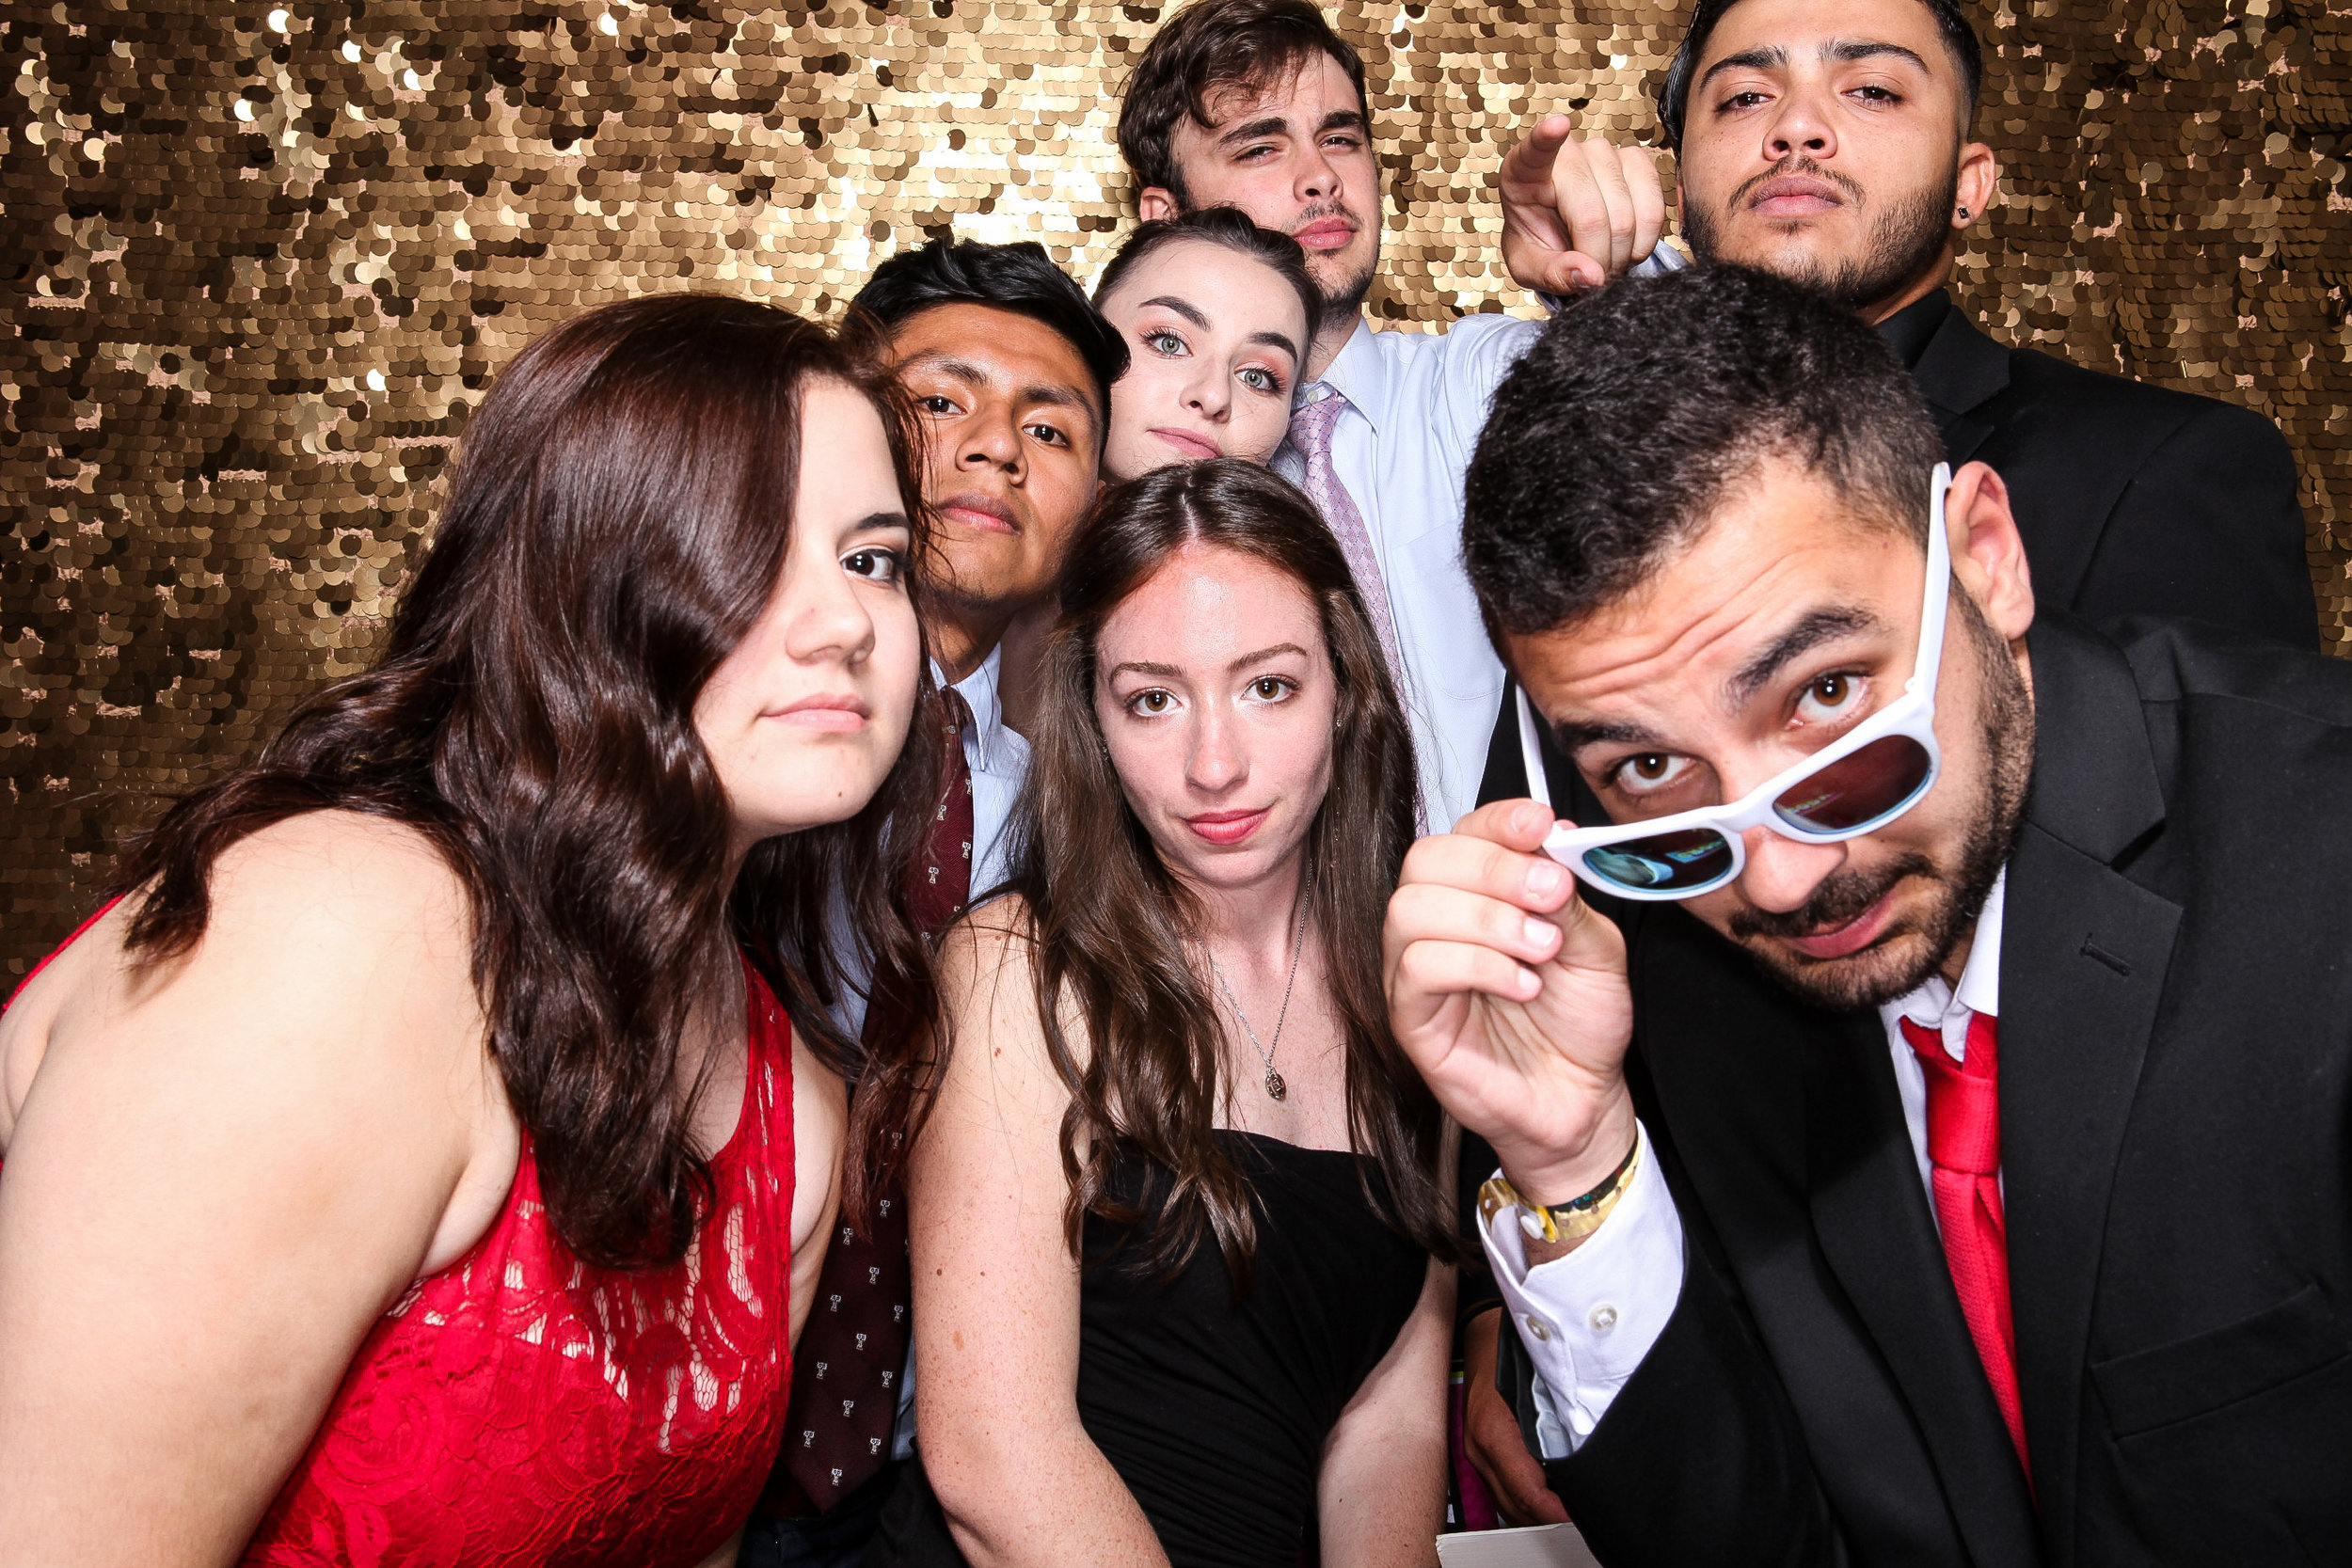 20190503_Adelphi_Senior_Formal-281.jpg